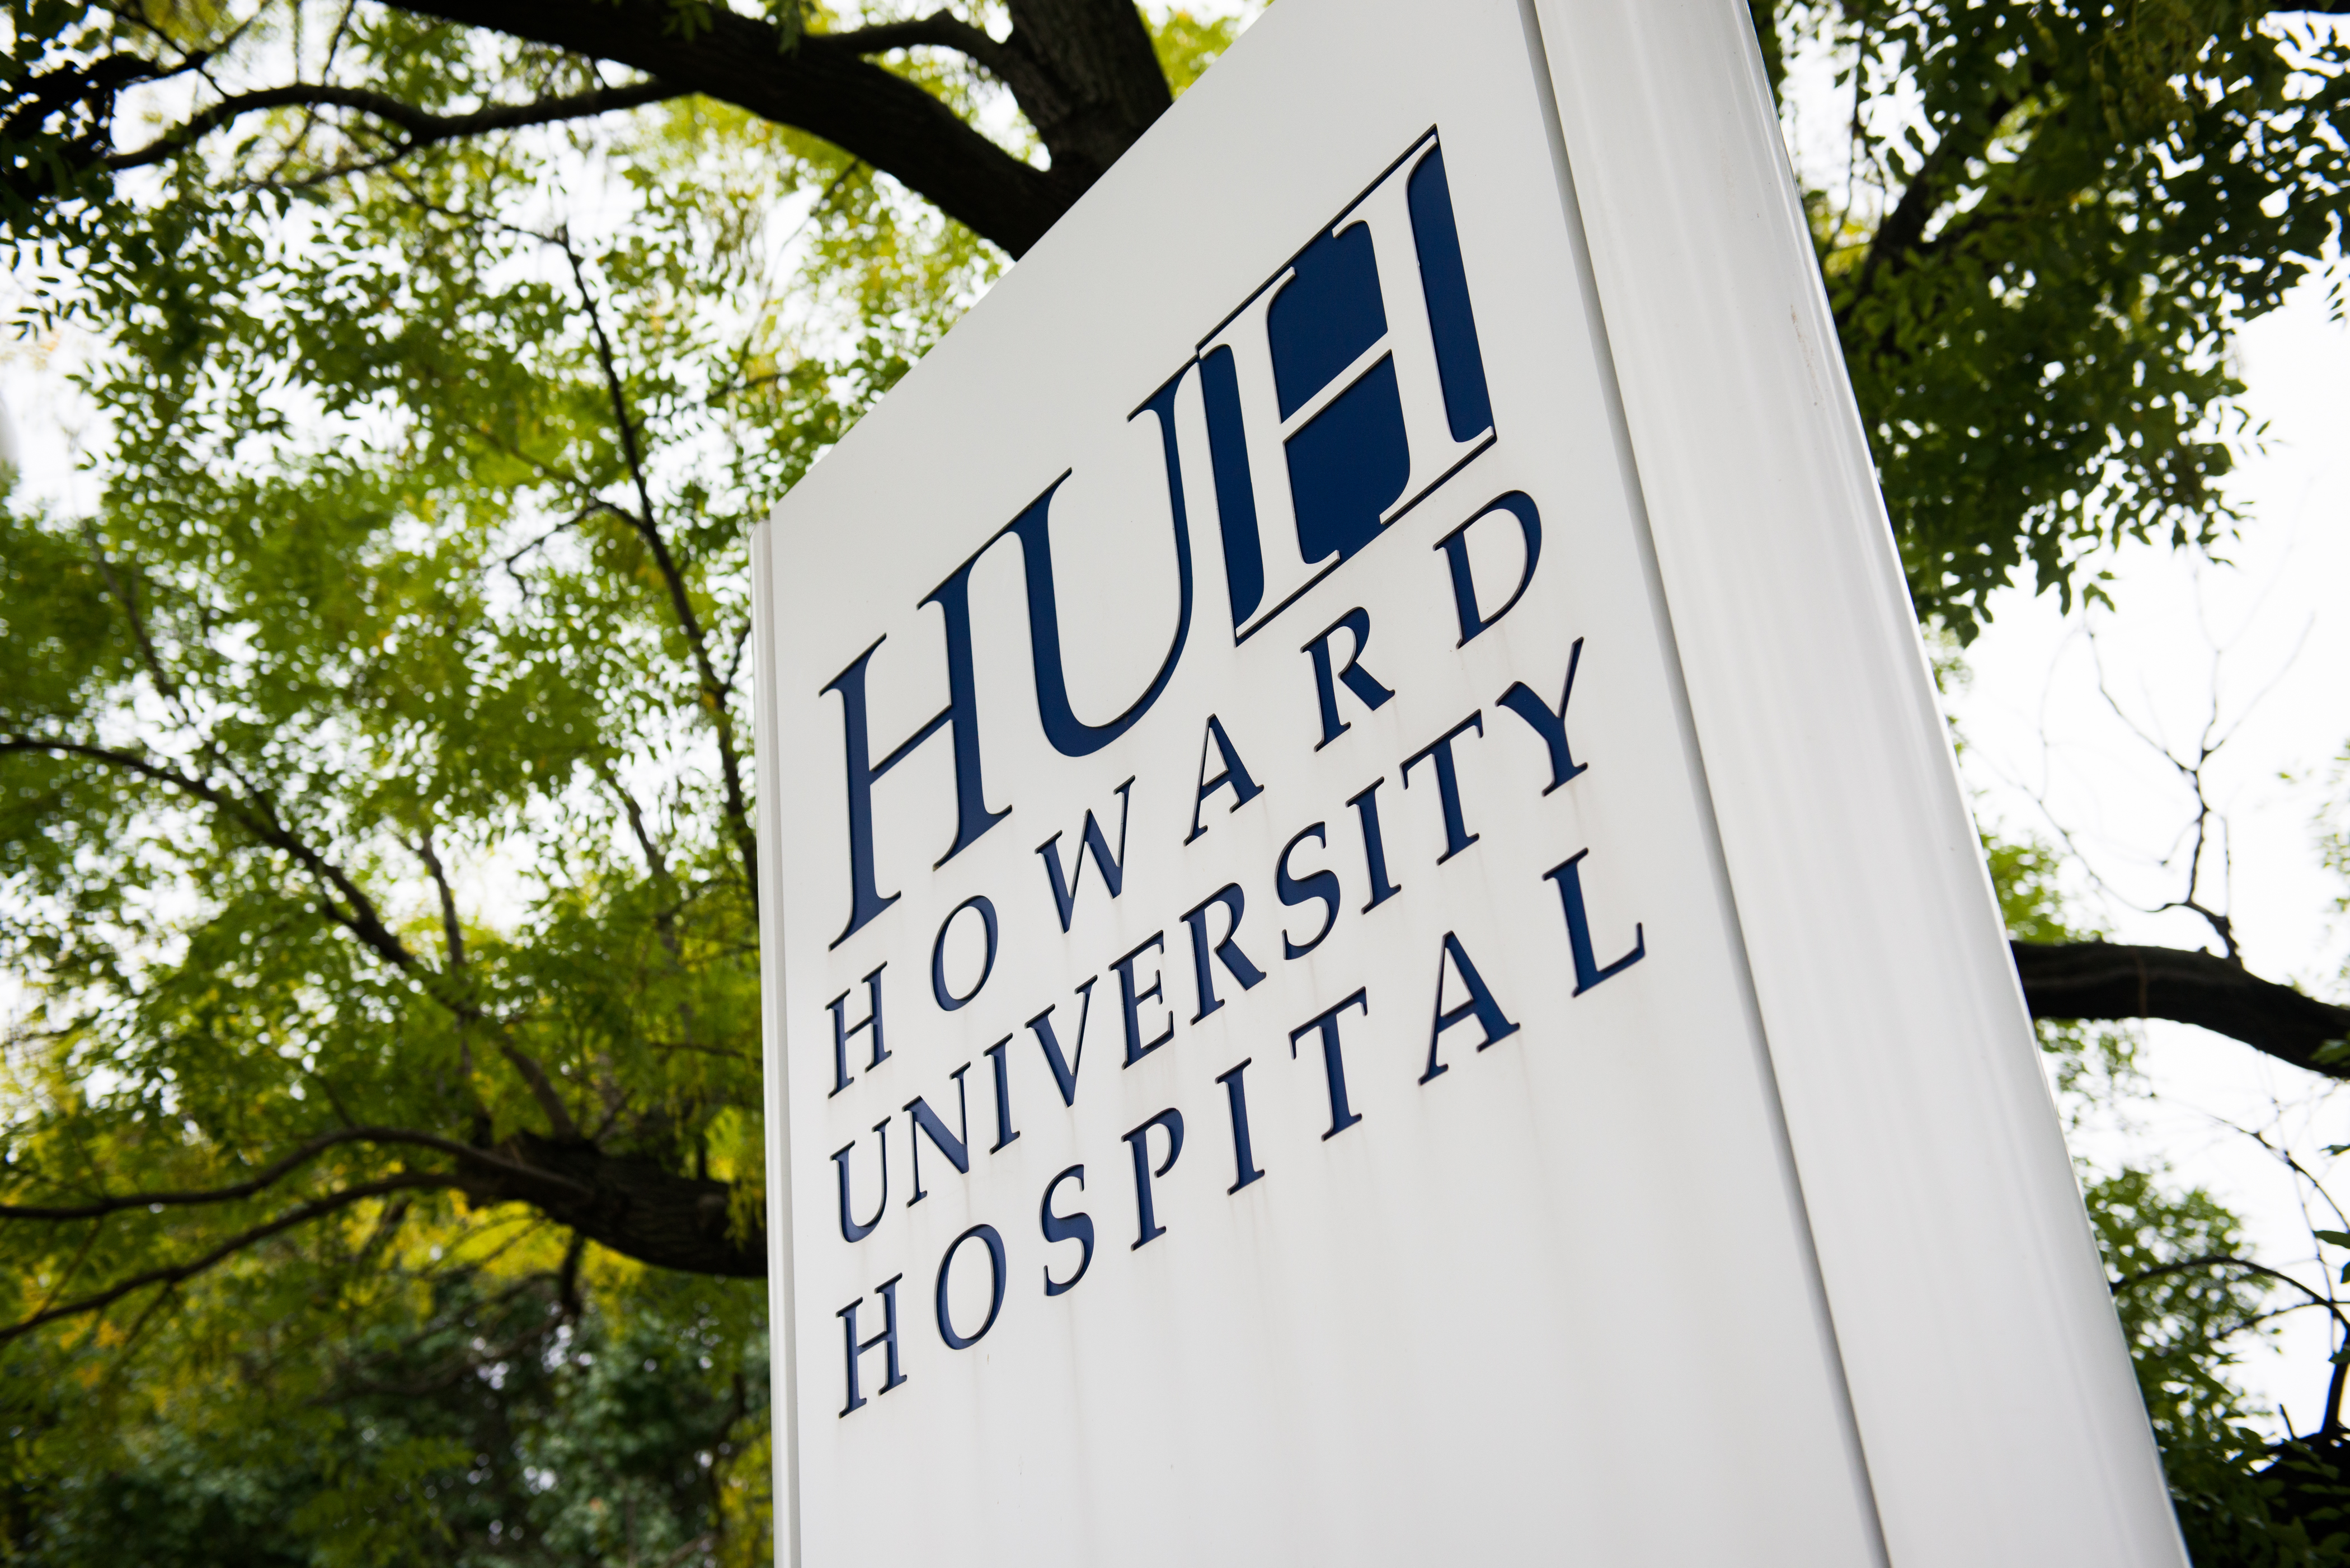 Howard University Hospital is pictured on Friday October 3, 2014 in Washington, D.C.